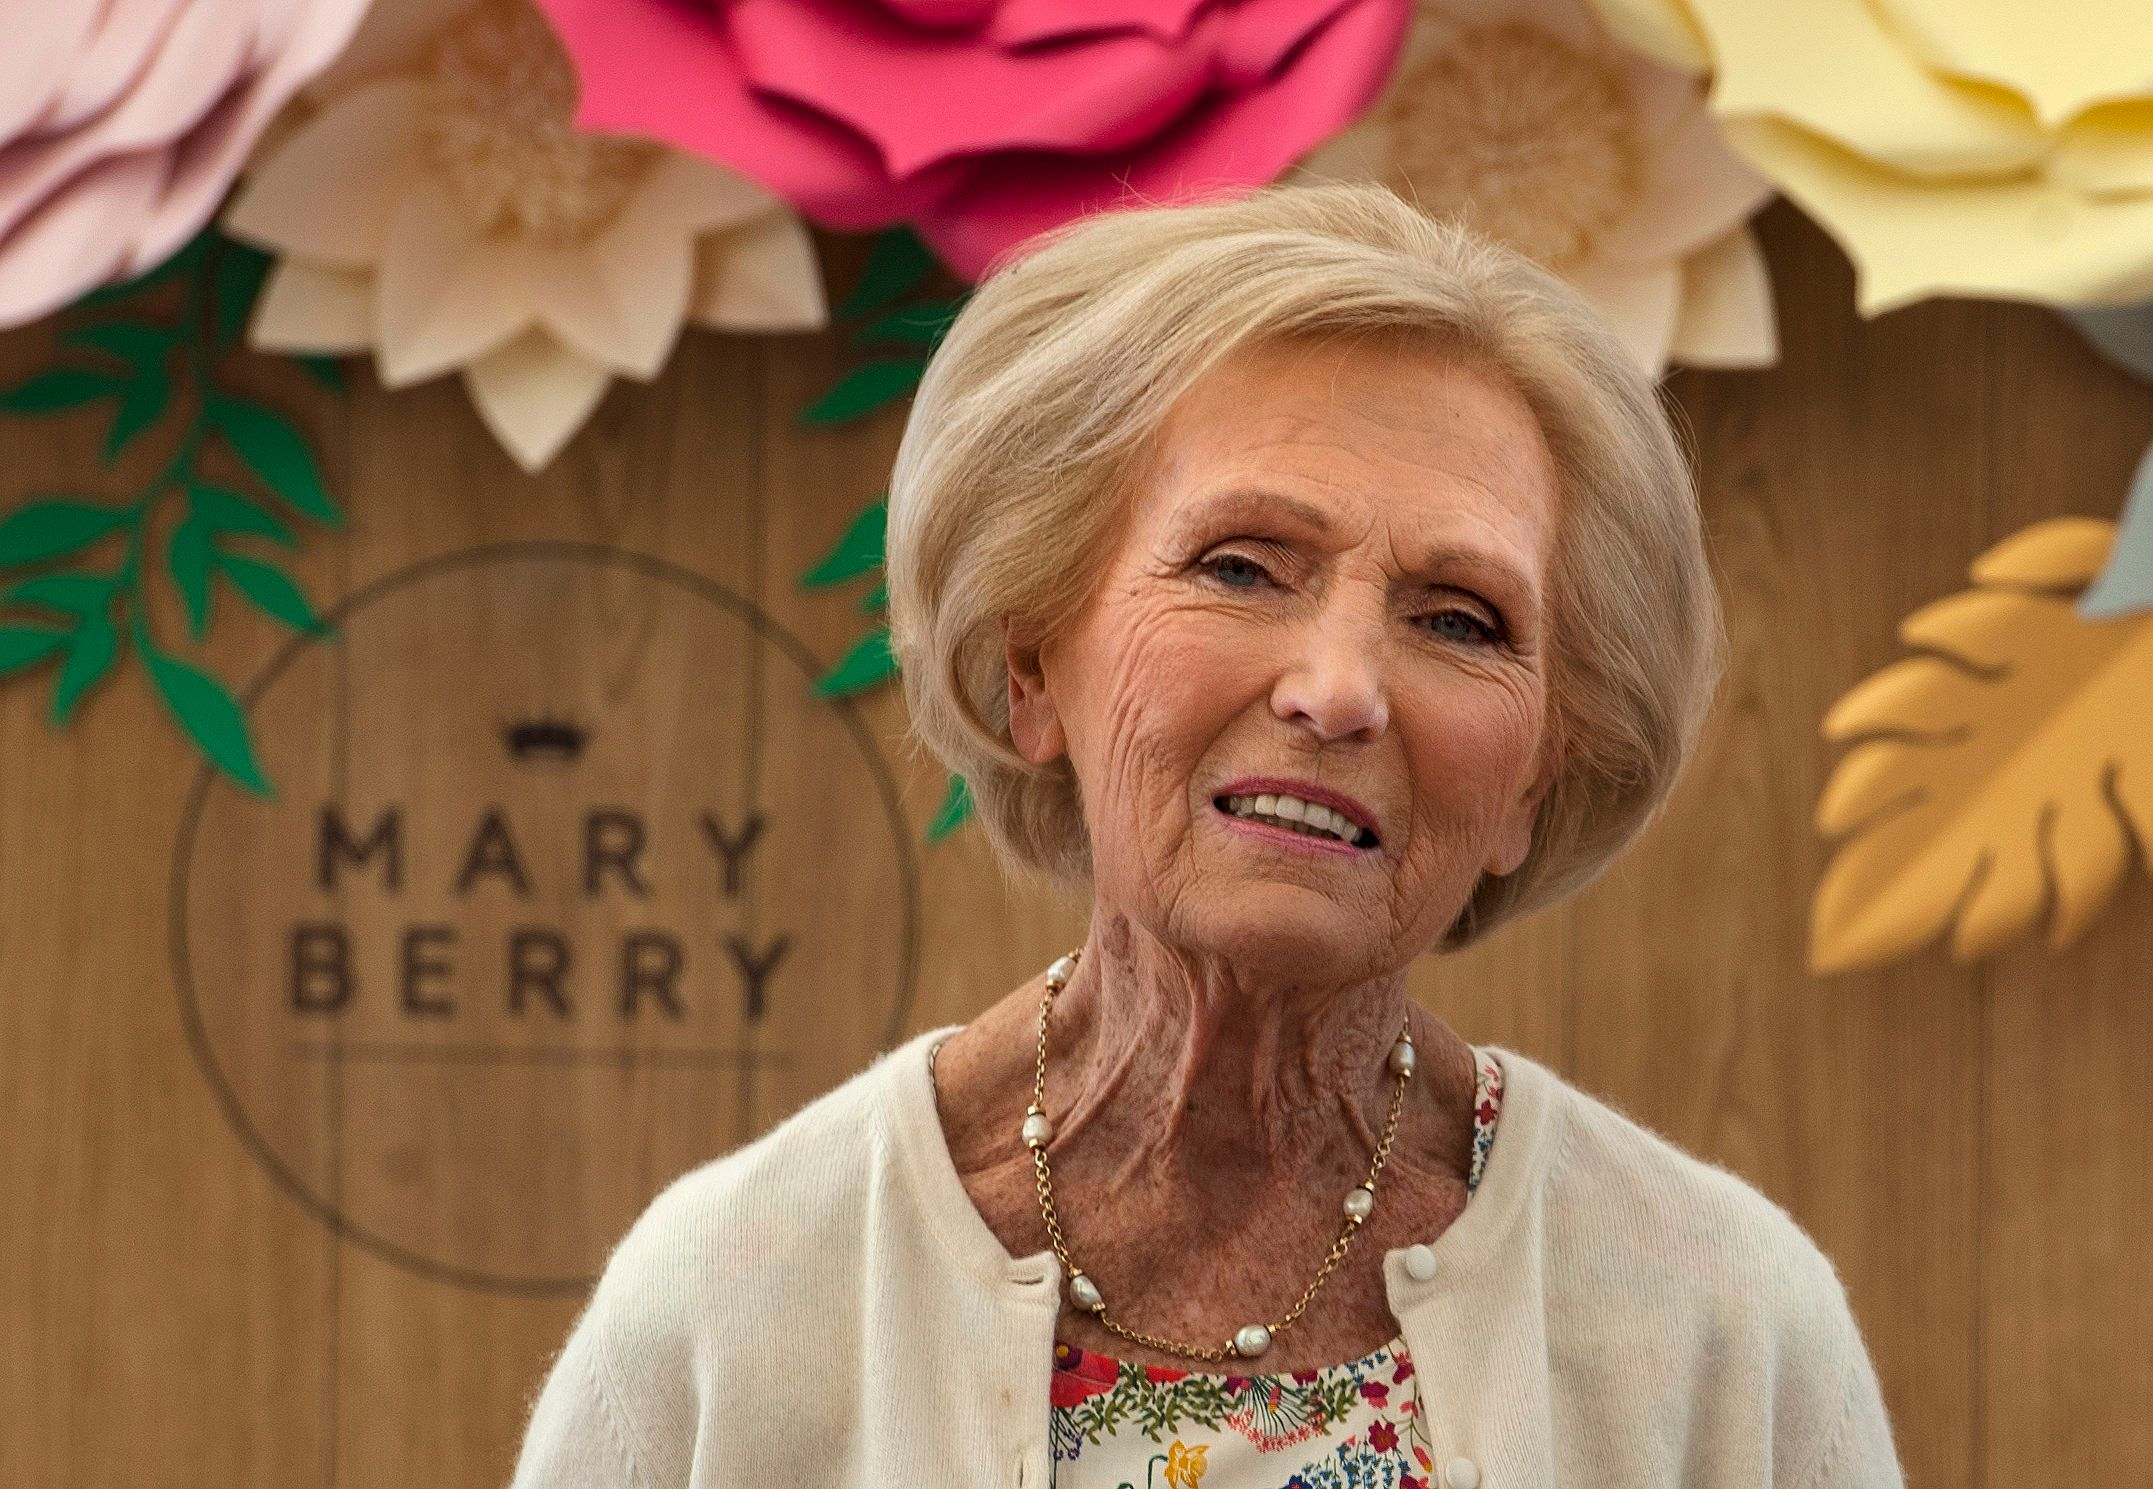 'Great British Bake Off' Star Mary Berry Gets a New Show